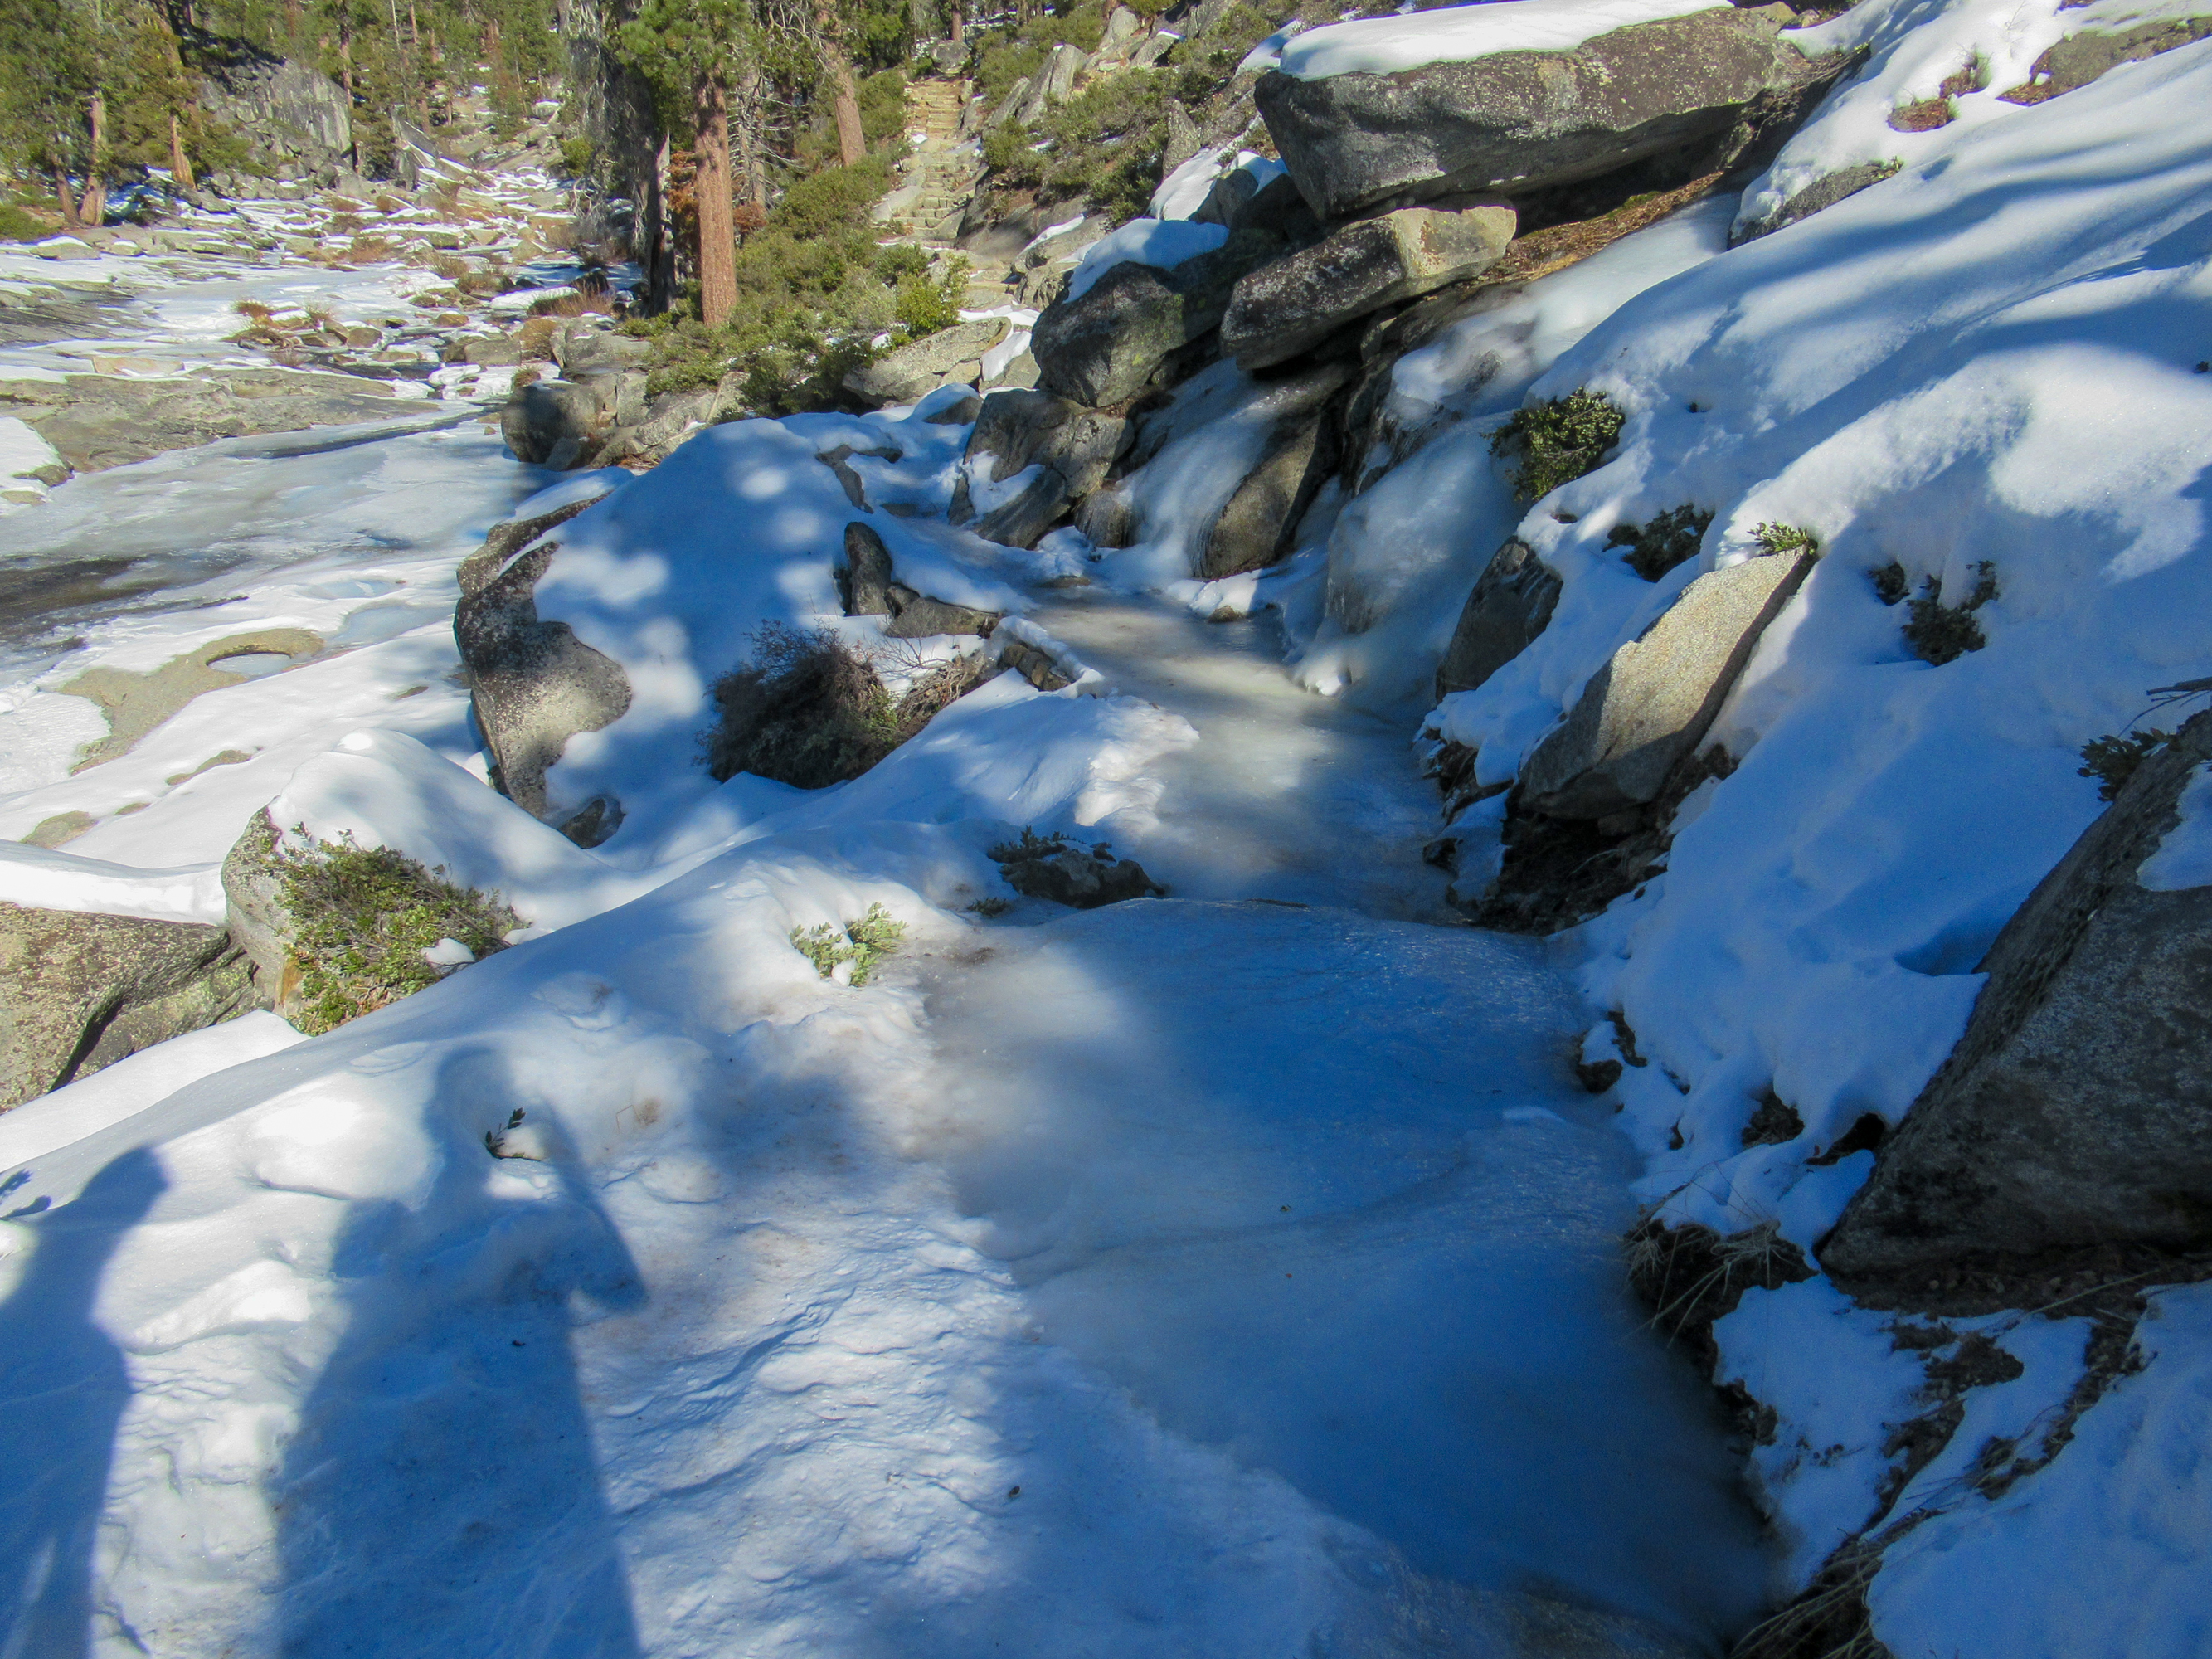 Snow and ice cover the trail near Yosemite Falls.